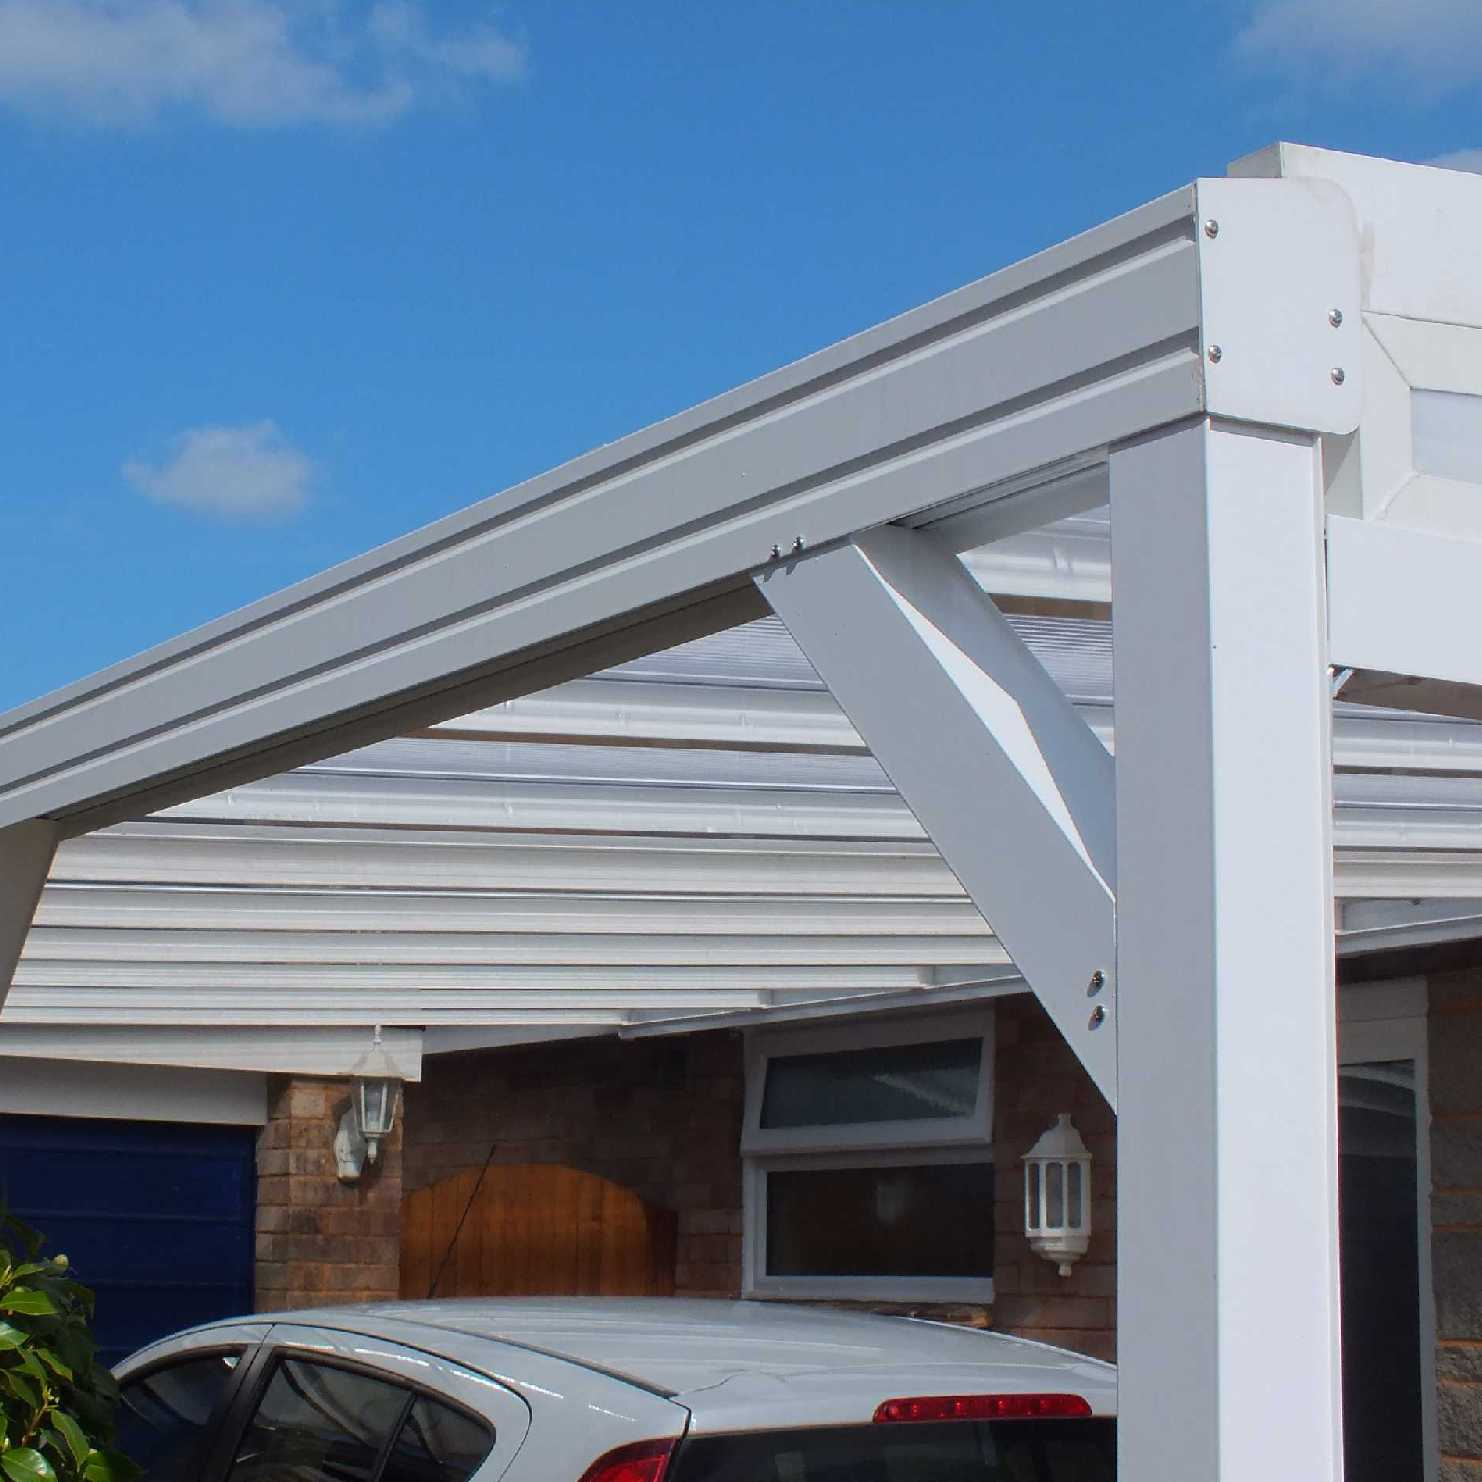 Great deals on Omega Smart White Lean-To Canopy with 16mm Polycarbonate Glazing - 12.0m (W) x 3.0m (P), (5) Supporting Posts